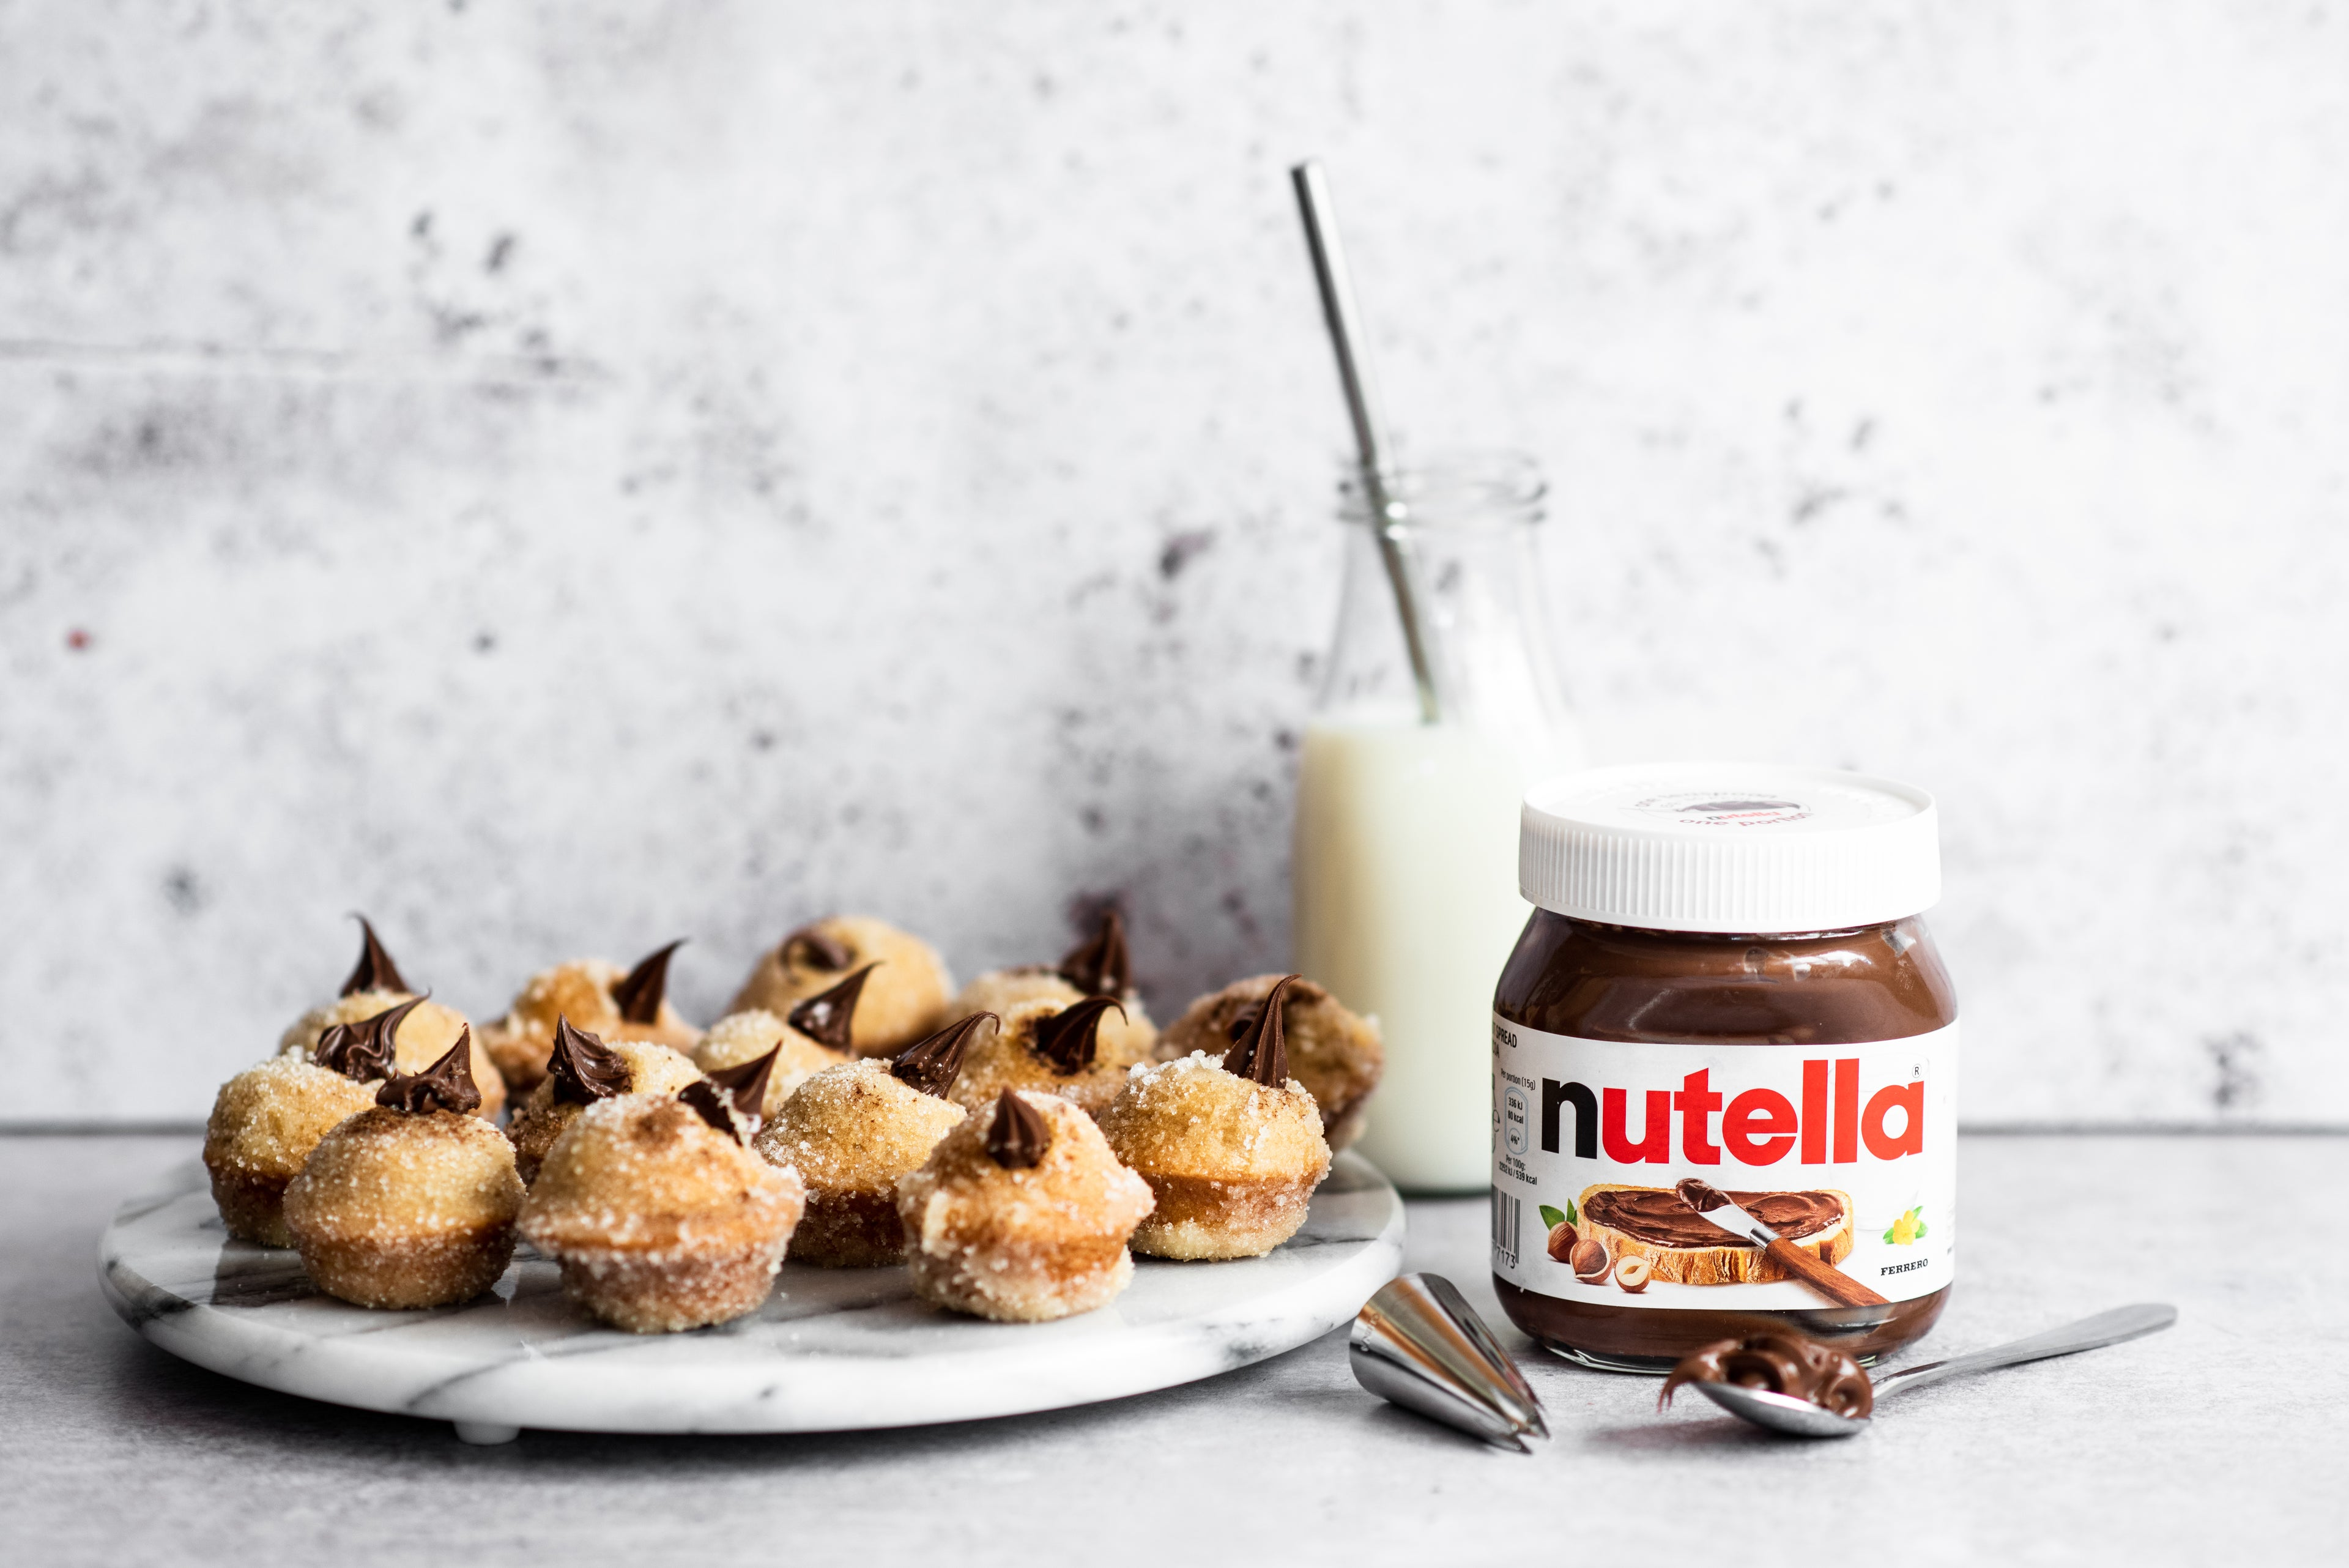 Plate of Nutella filled doughnuts next to a jar of Nutella